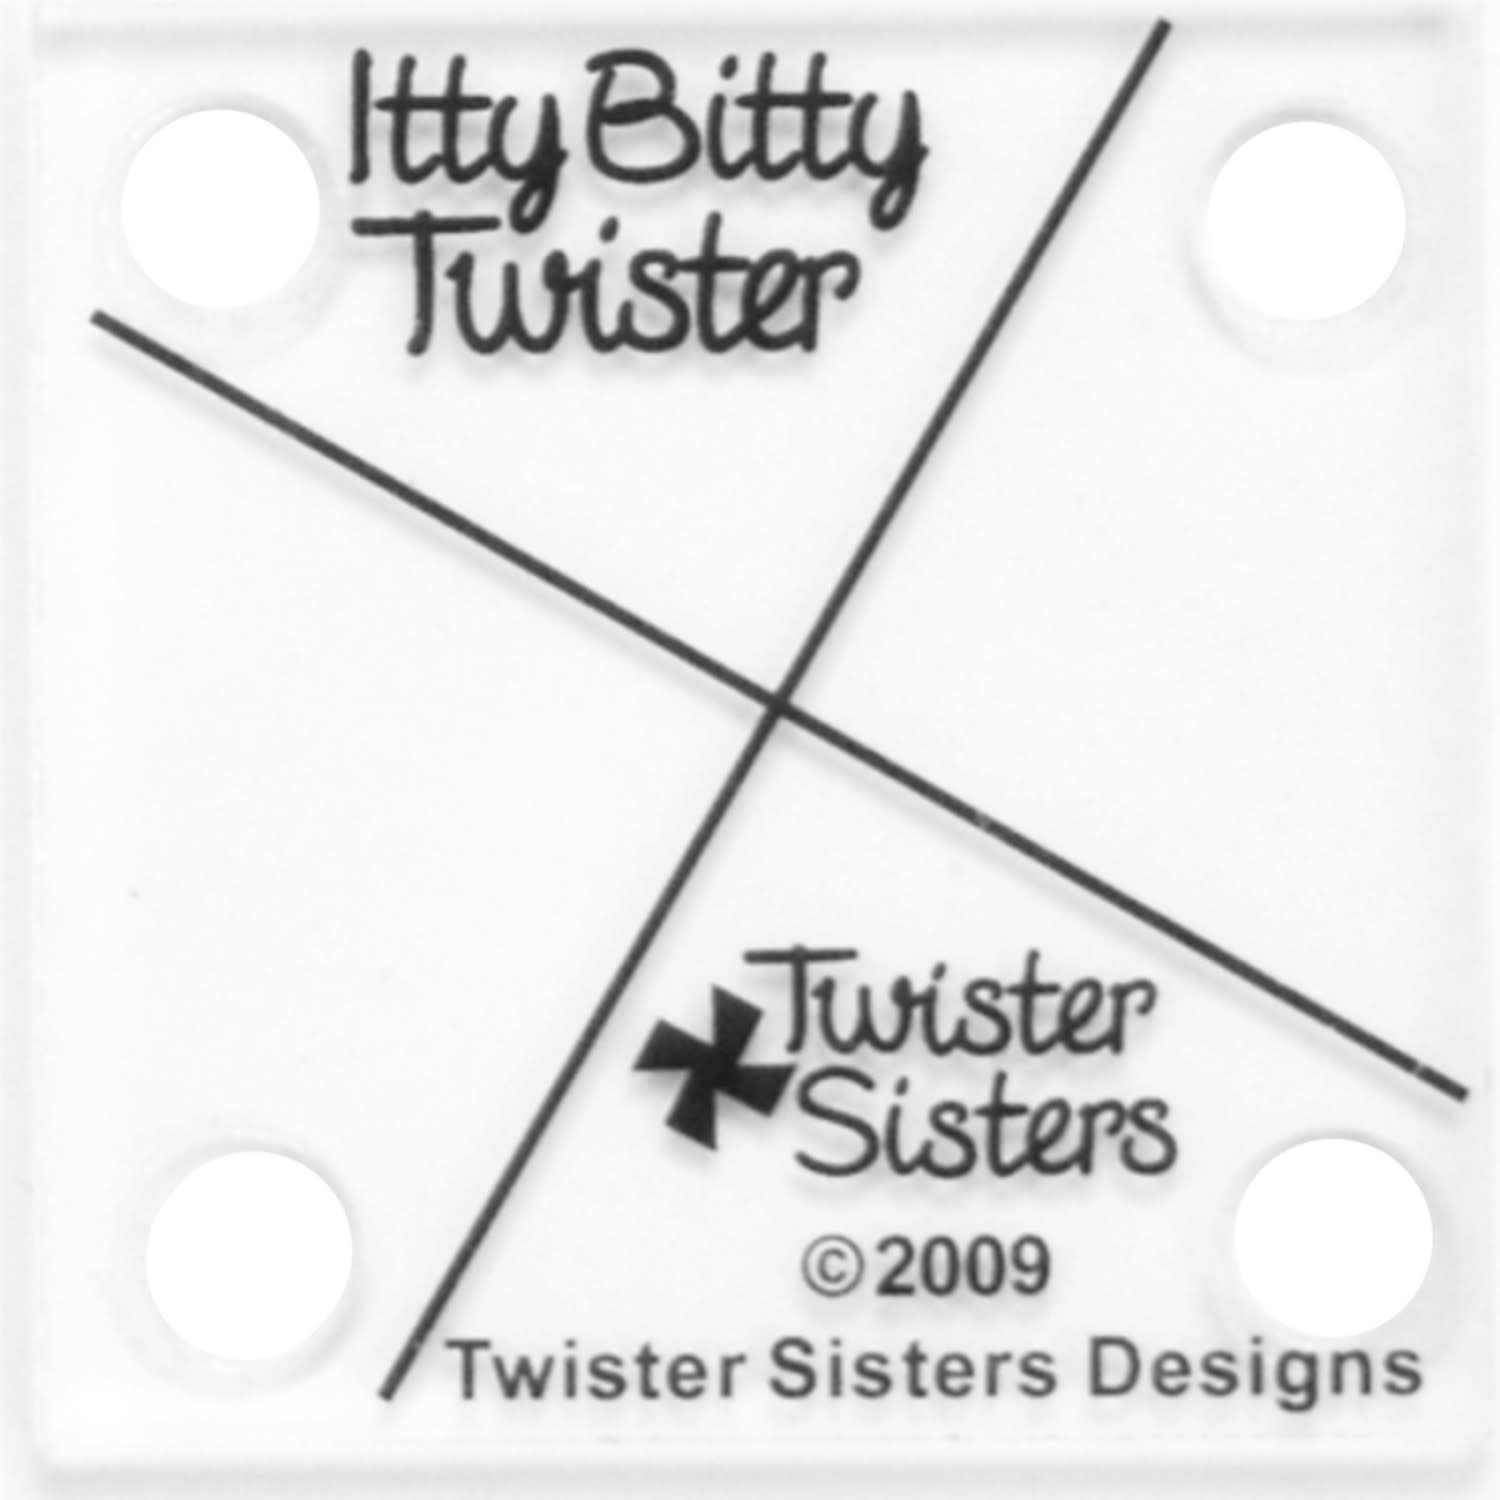 TWISTER SISTERS Itty Bitty Twister Pinwheel